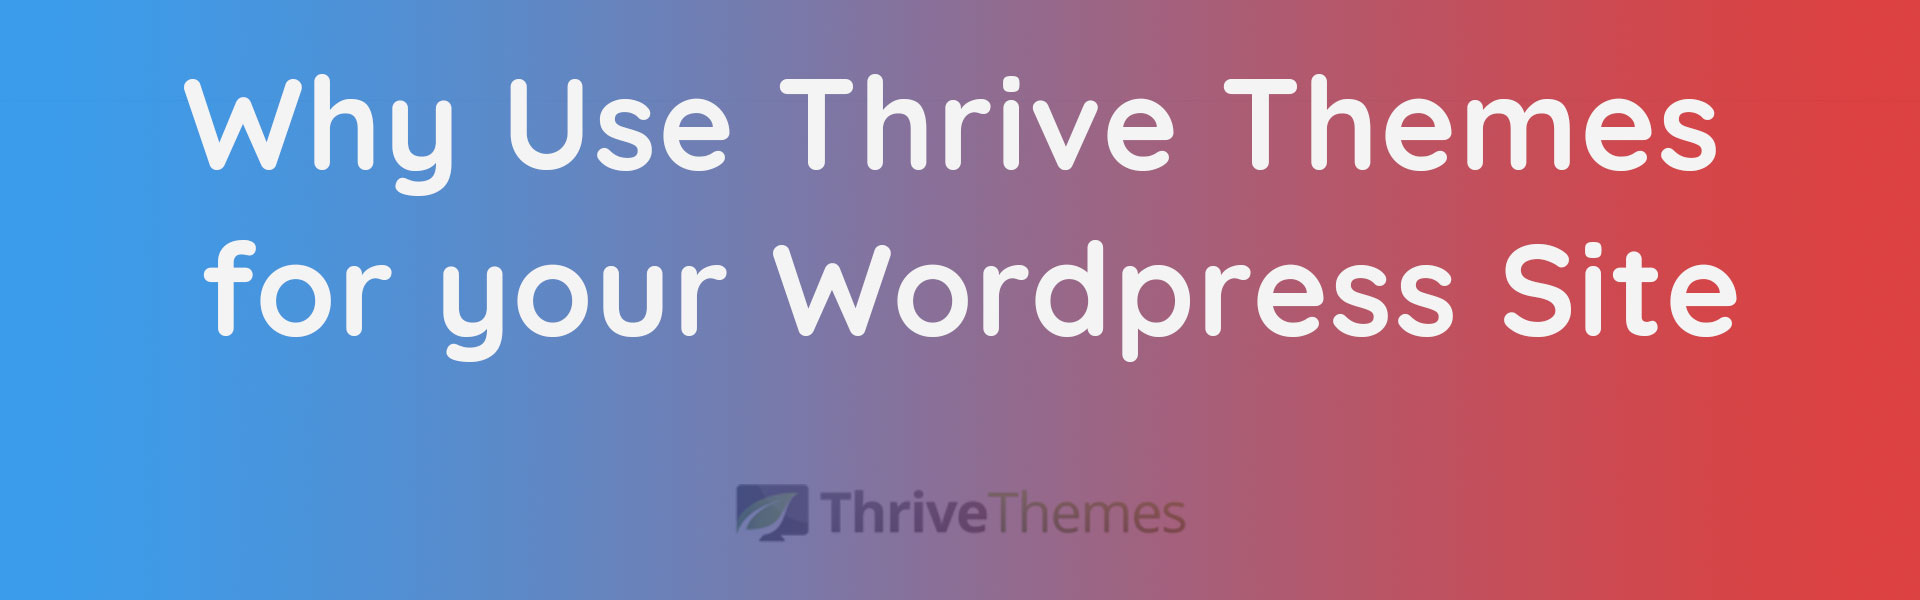 Warranty Contact Number Thrive Themes WordPress Themes